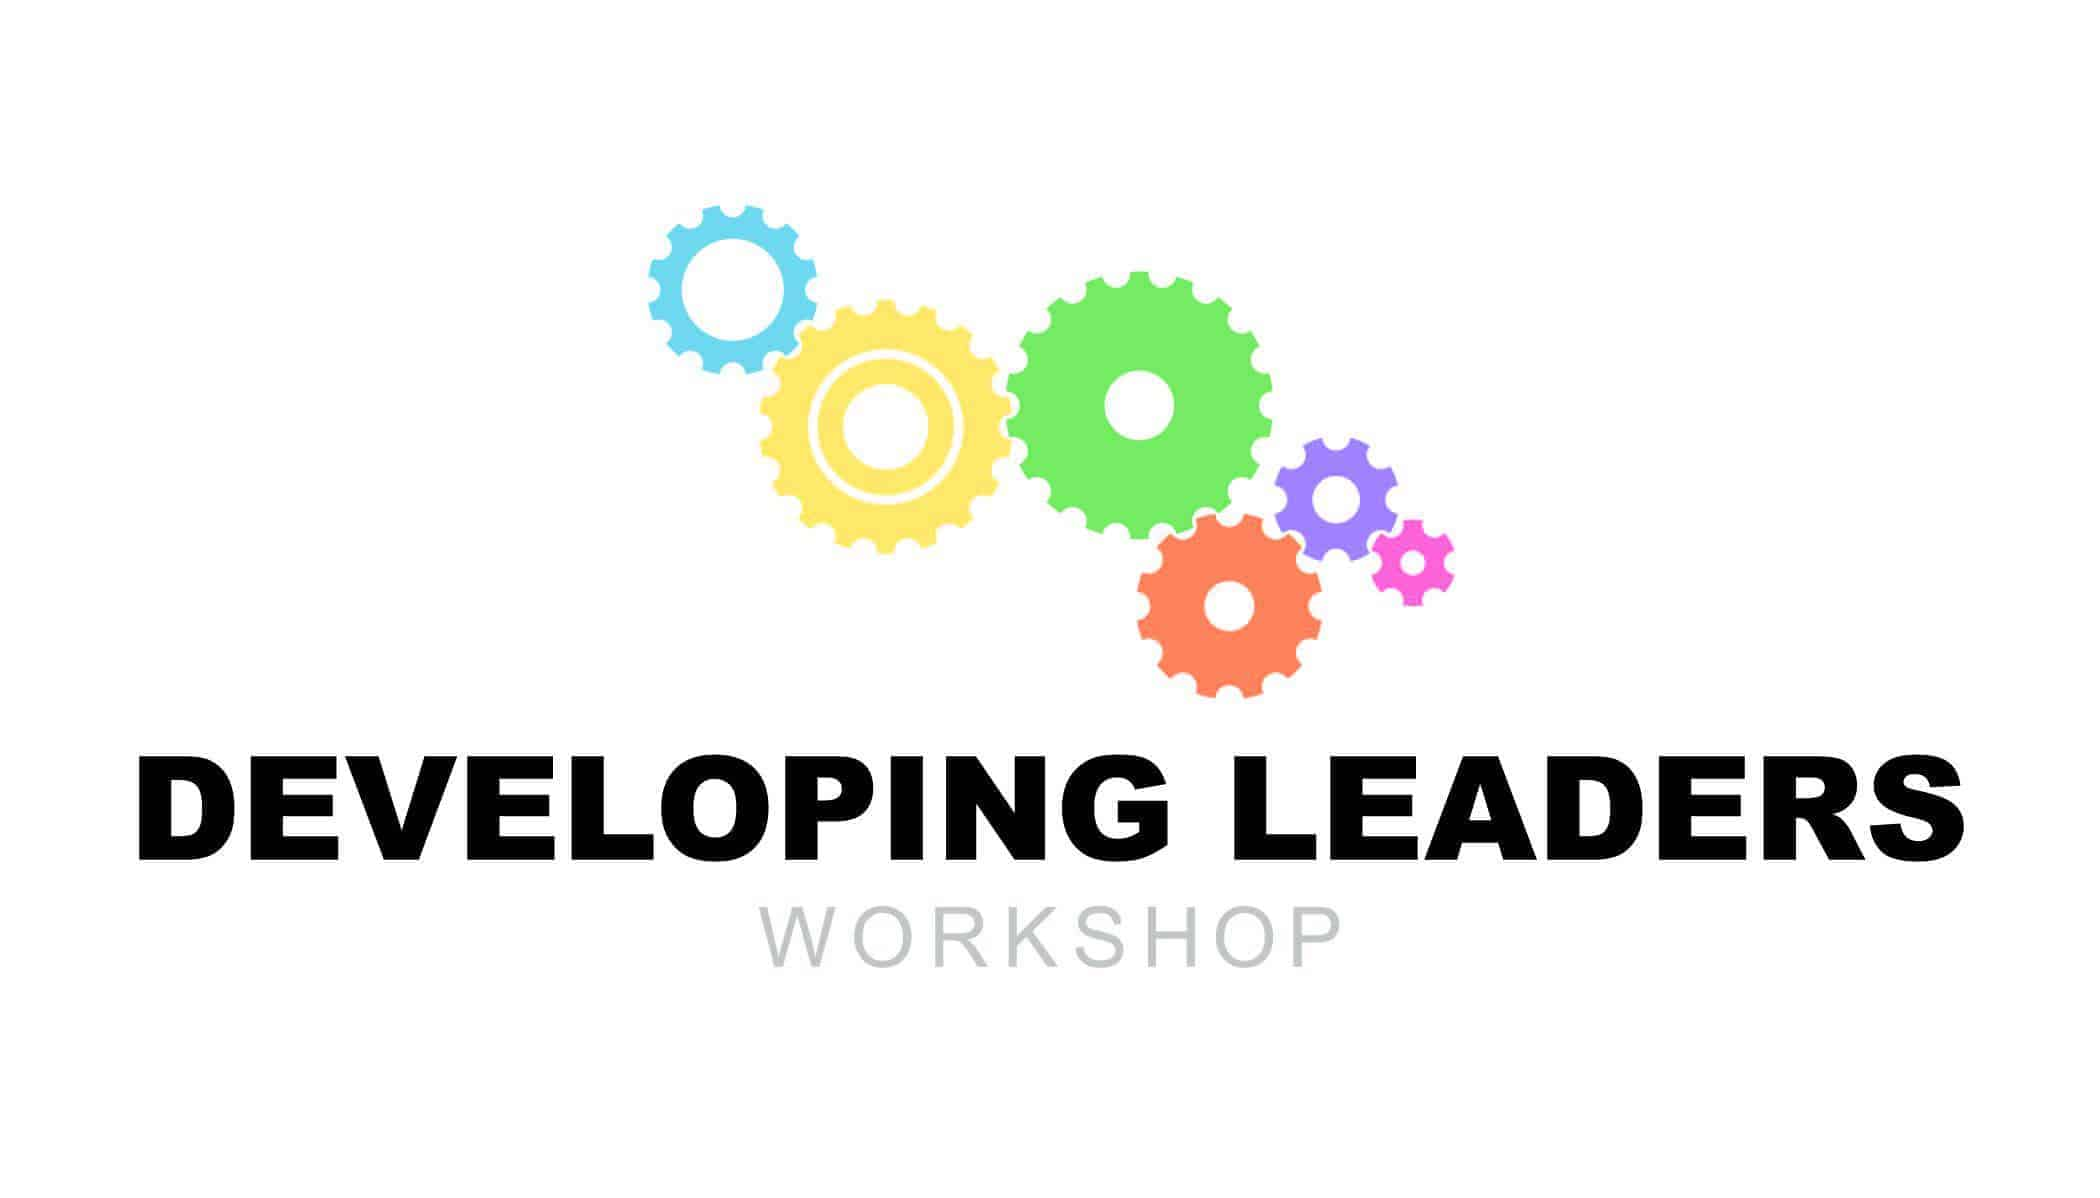 developing leaders workshop logo with five colored gears